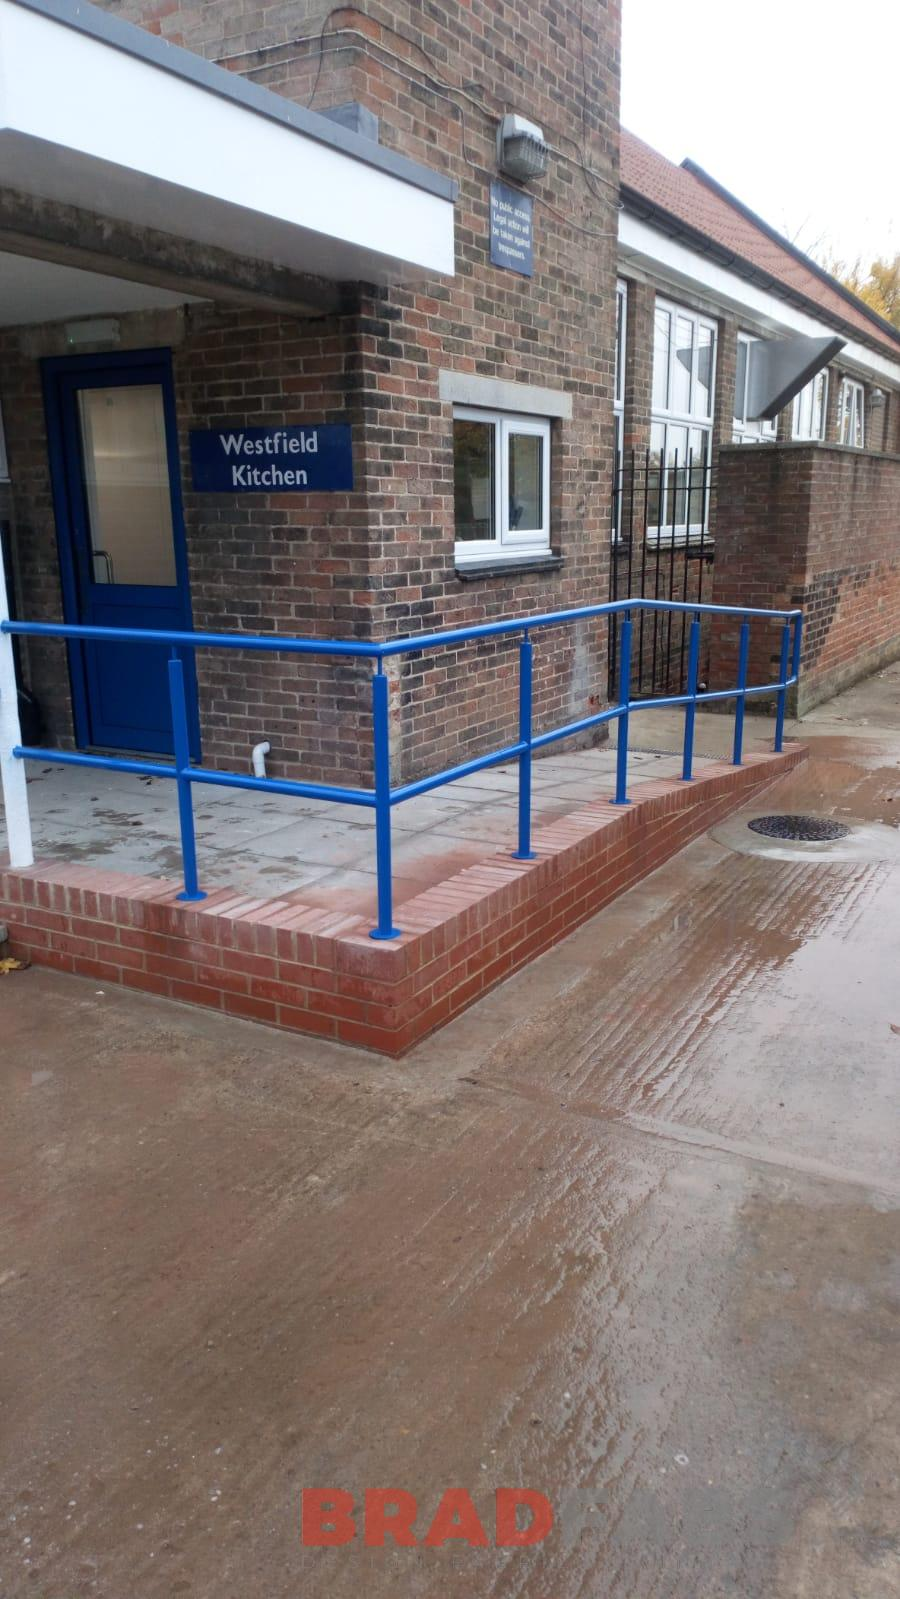 External steel railings for a school